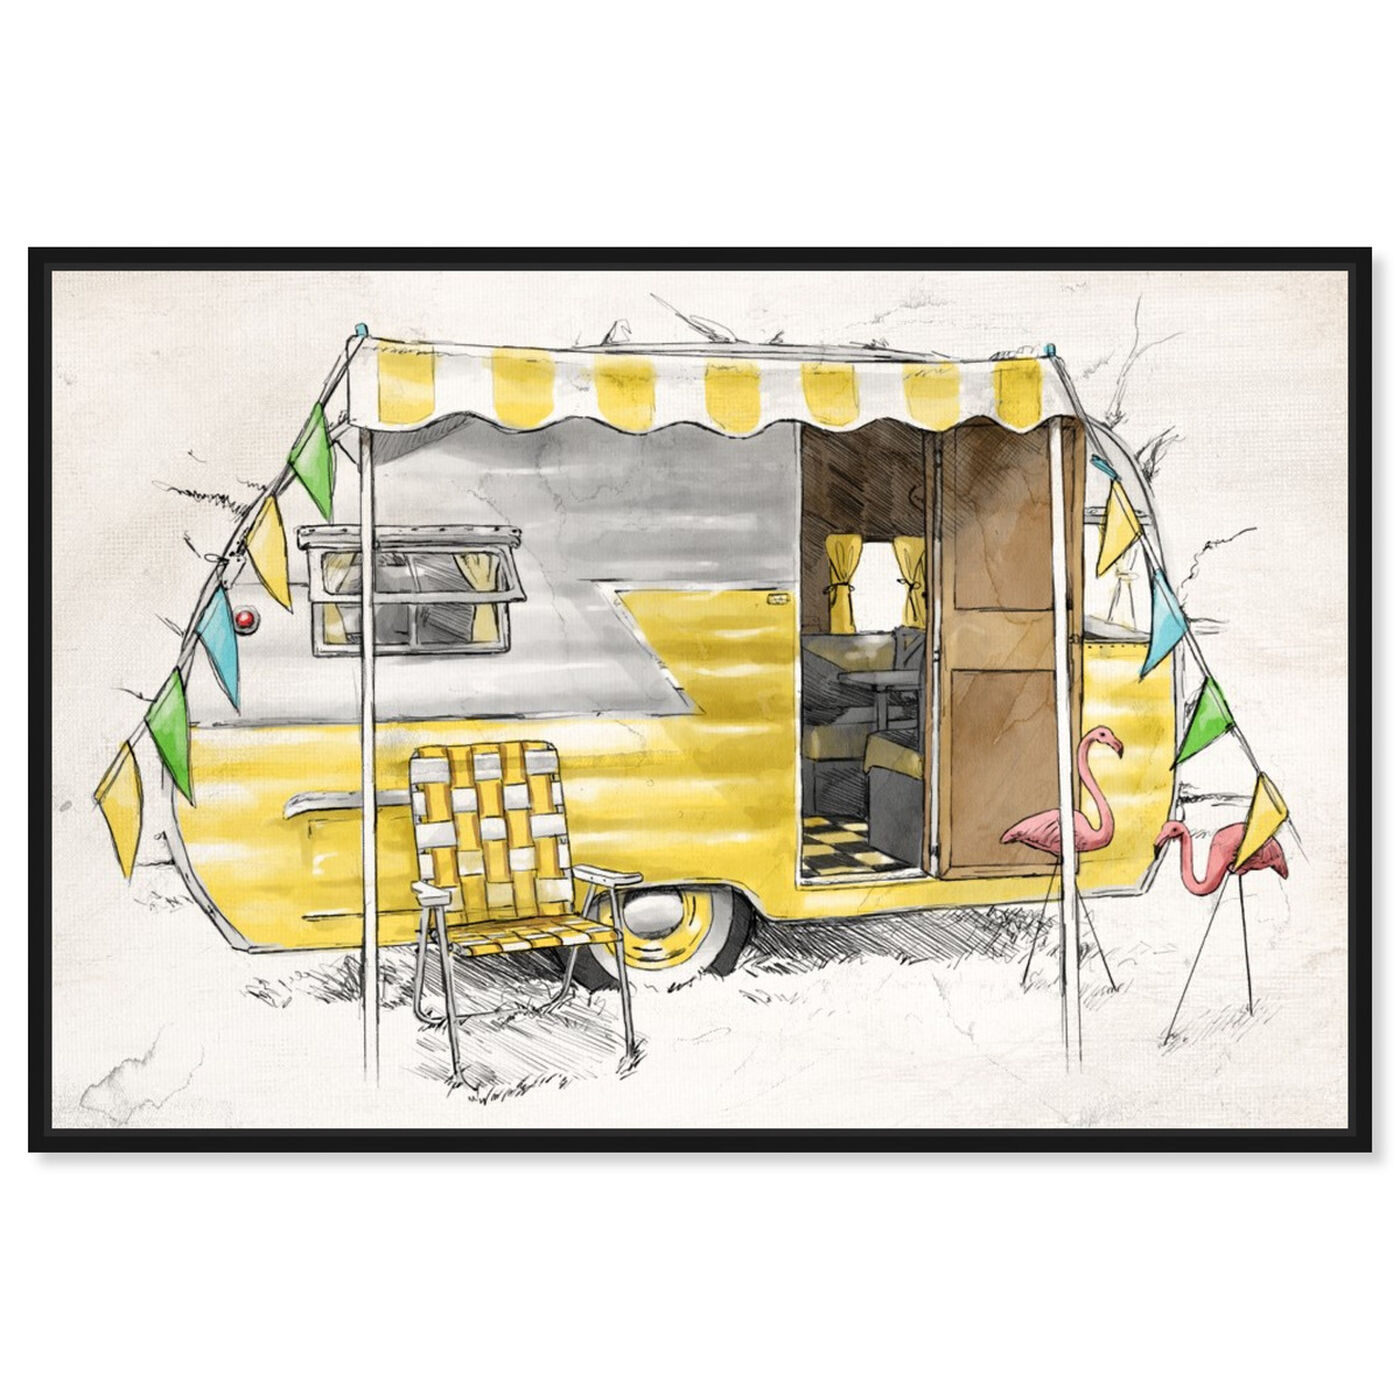 Front view of Yellow Camper featuring entertainment and hobbies and camping art.